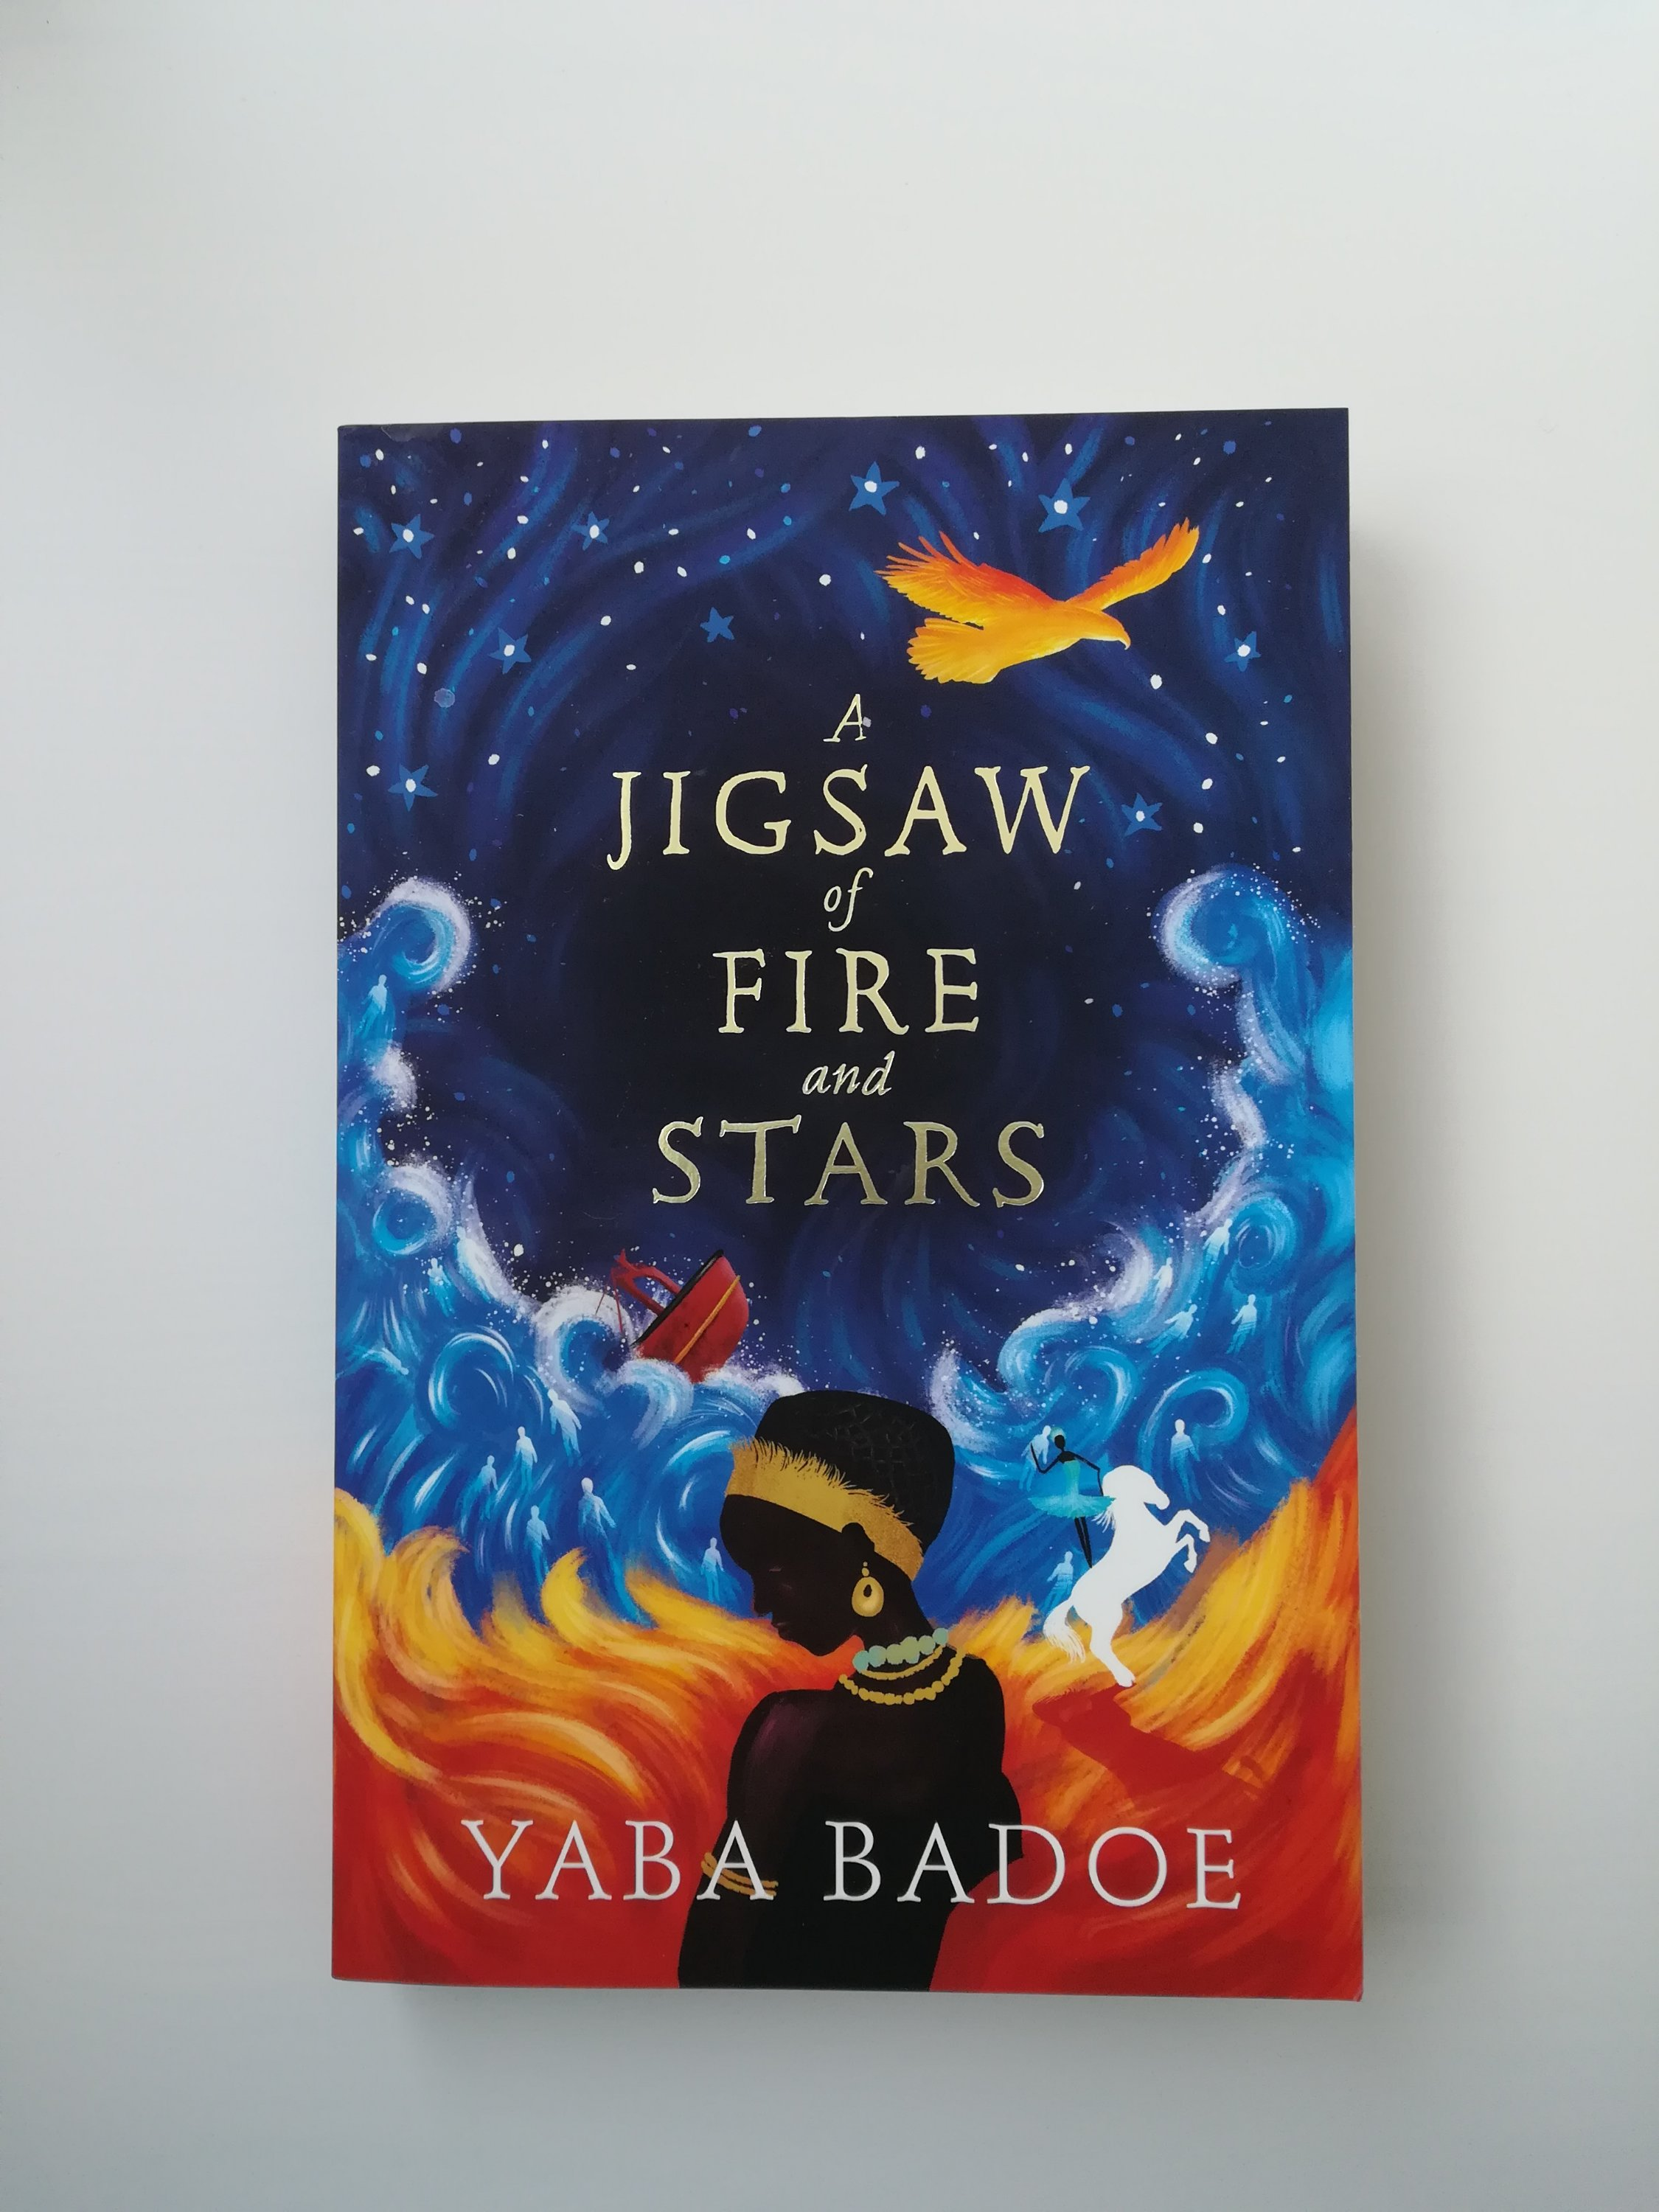 A Jigsaw of Fire and Stars by Yaba Badoe cover on white background